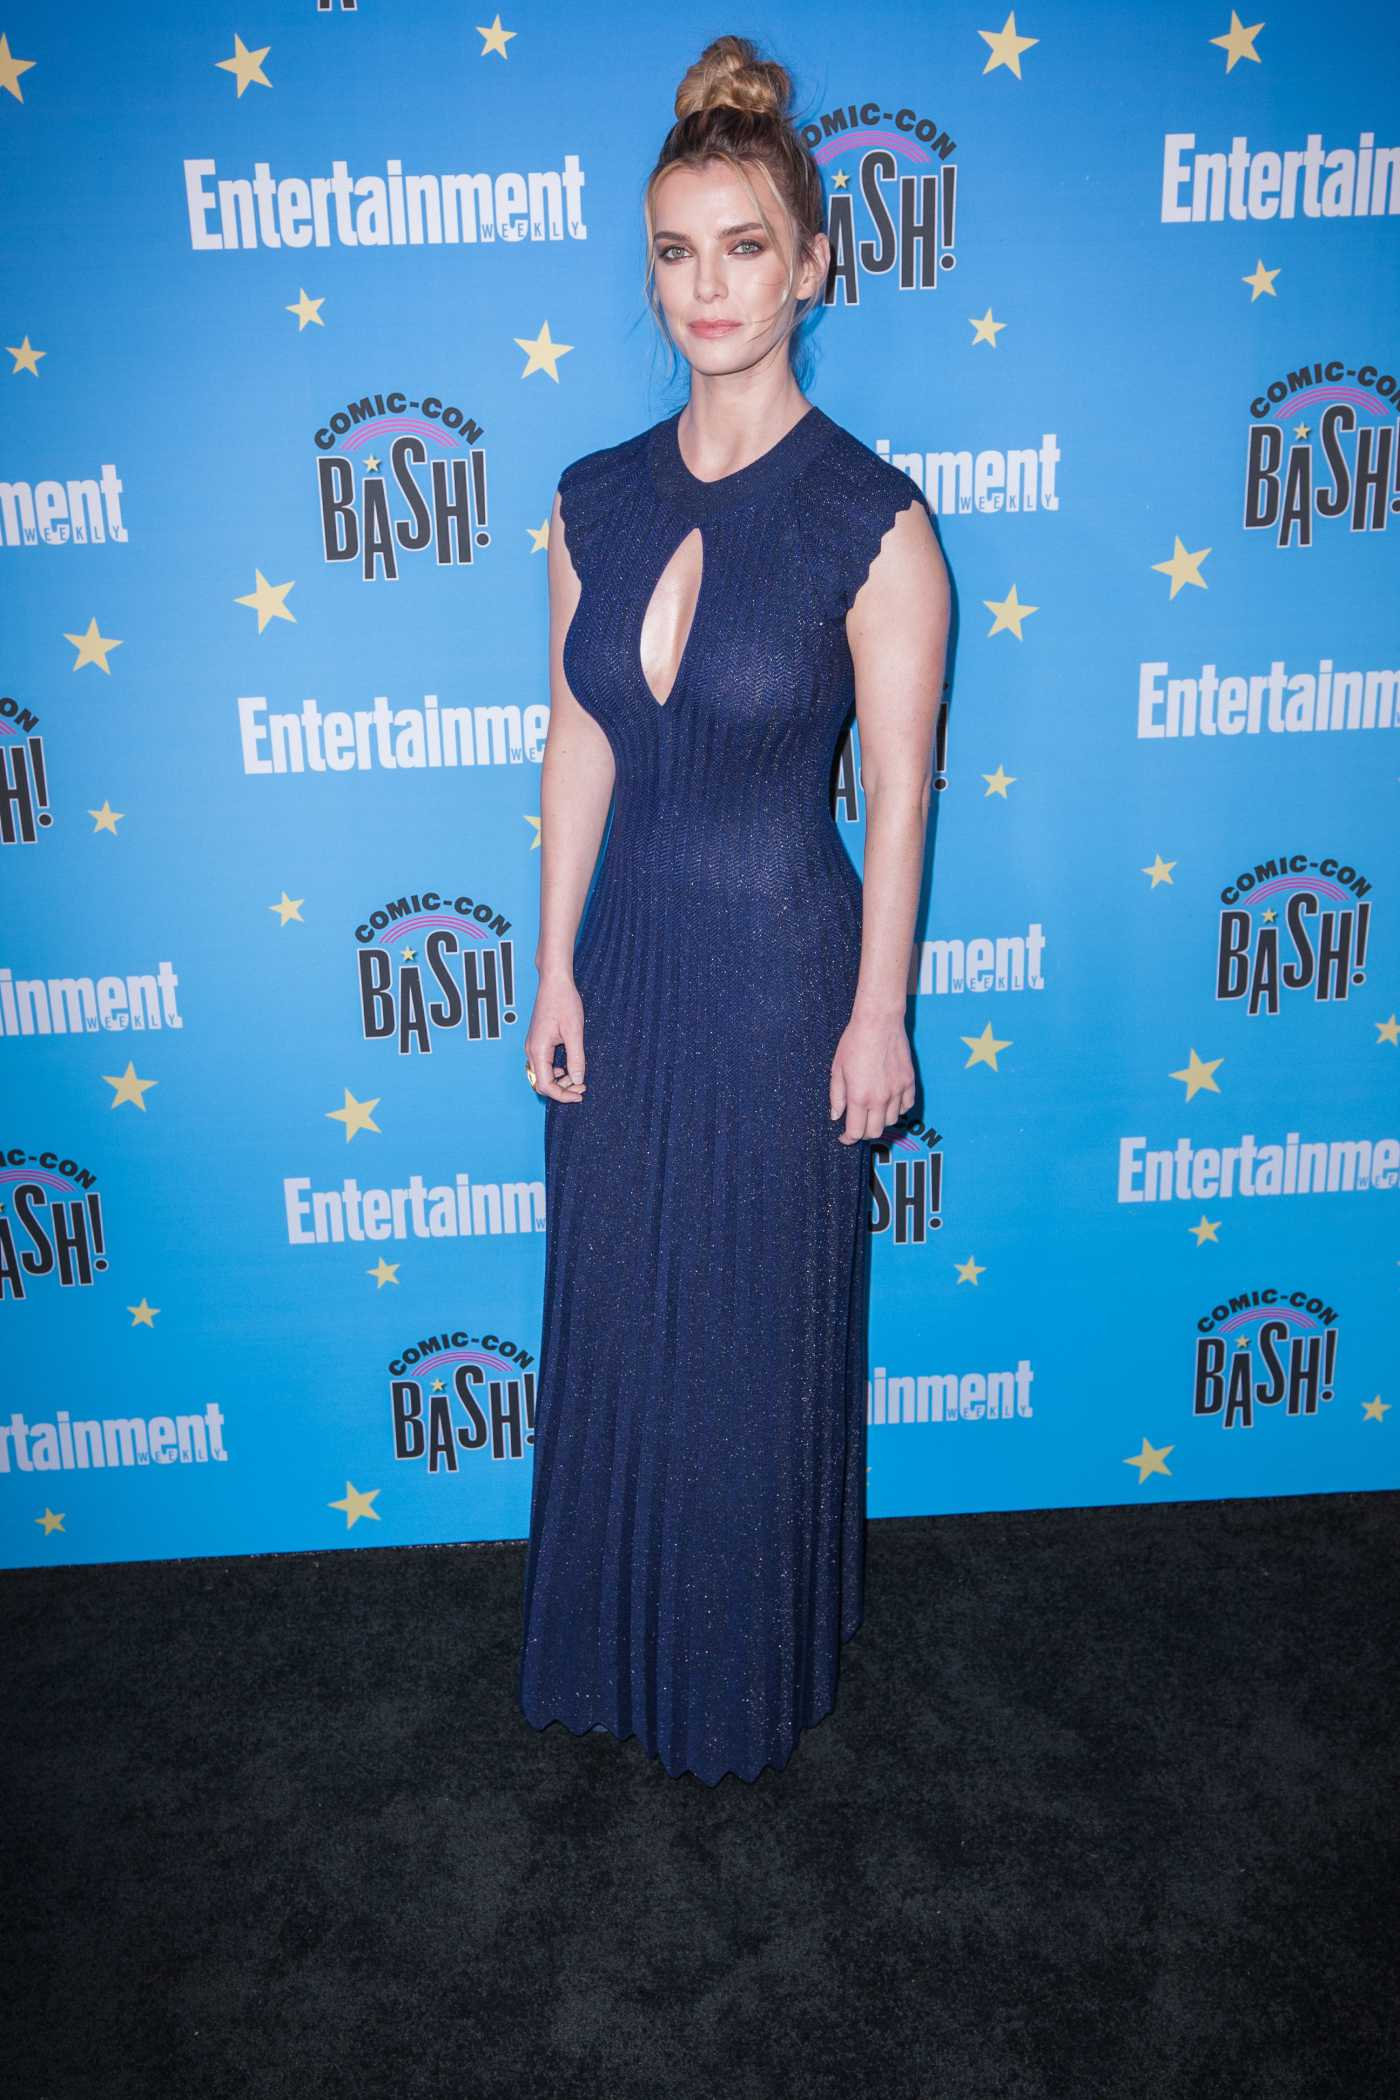 Betty Gilpin Attends Entertainment Weekly's Comic-Con Bash in San Diego 07/20/2019